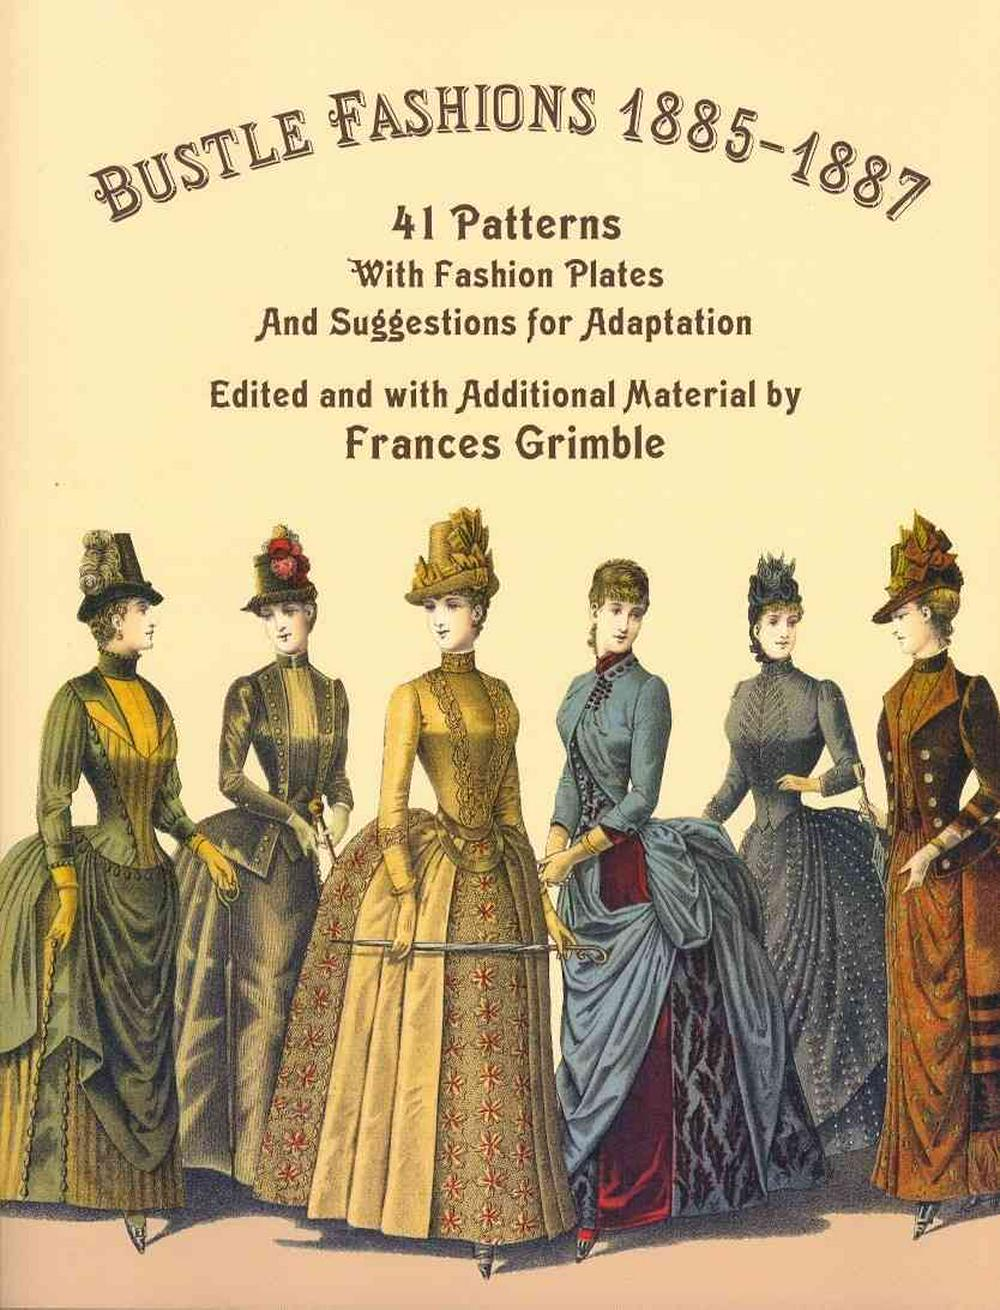 Bustle Fashions 1885-1887: 41 Patterns with Fashion Plates and Suggestions for Adaptation